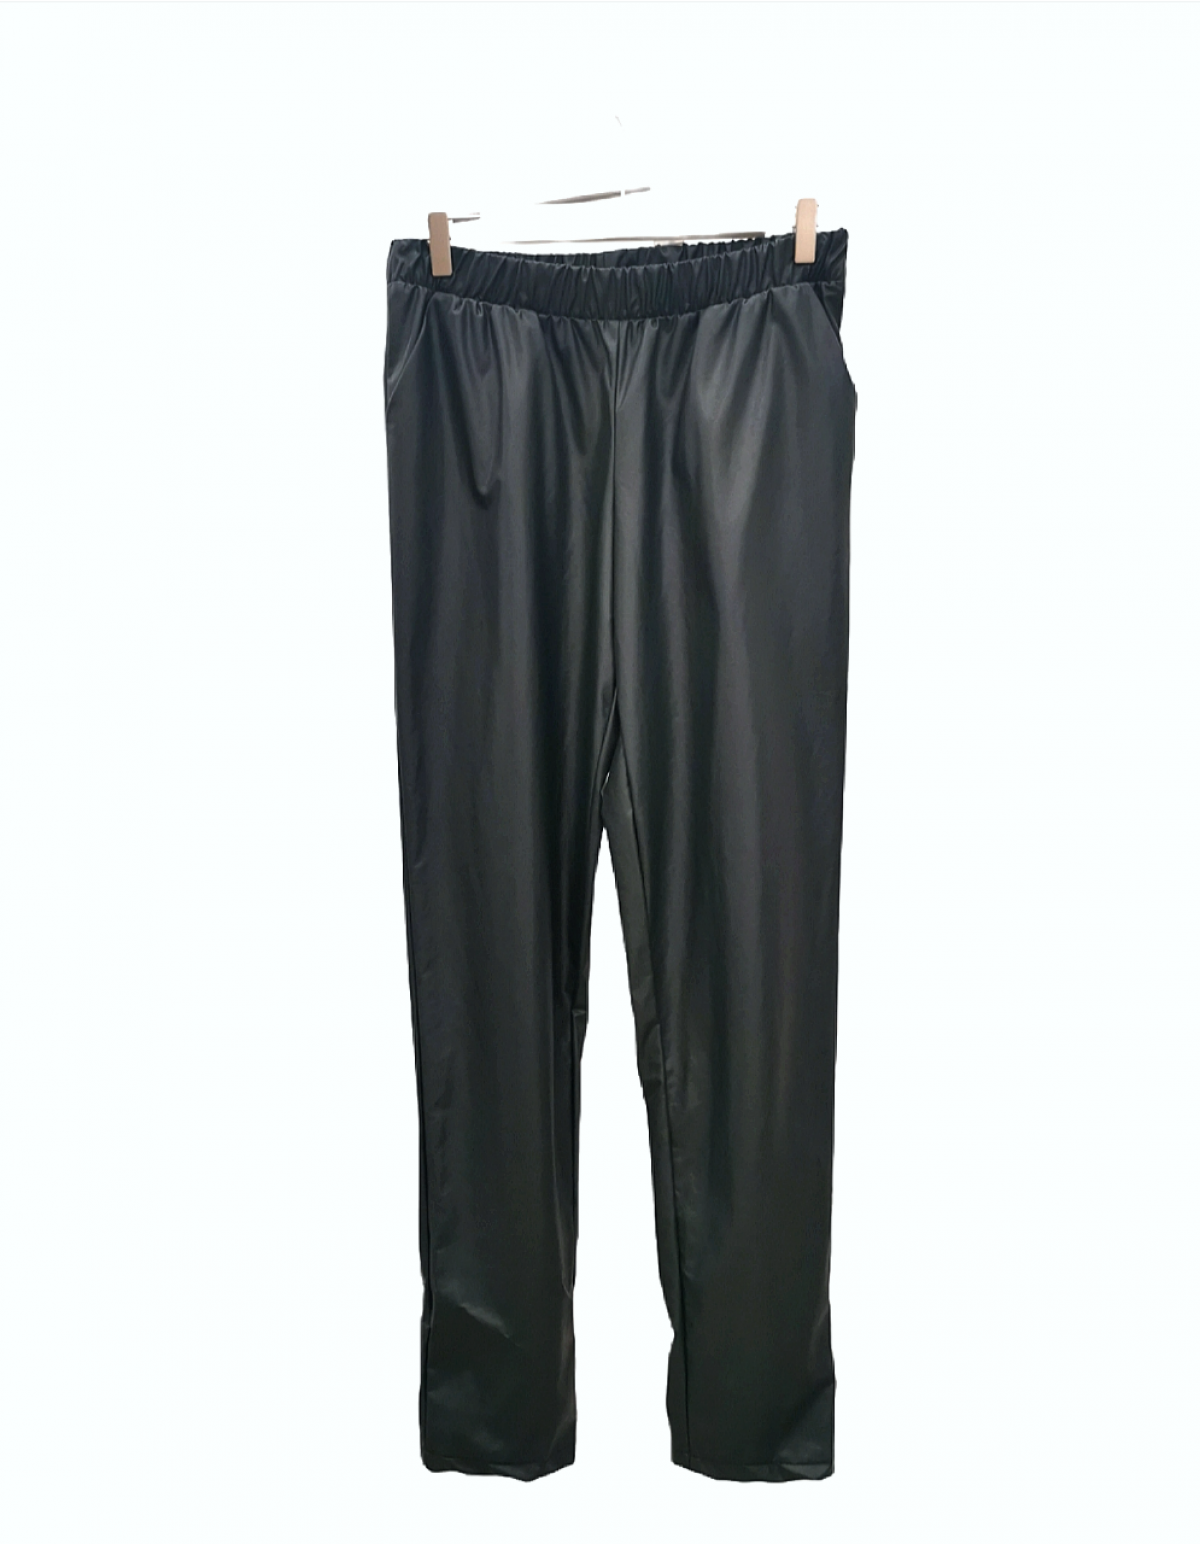 OLIVE GREEN ECO LEATHER TROUSERS